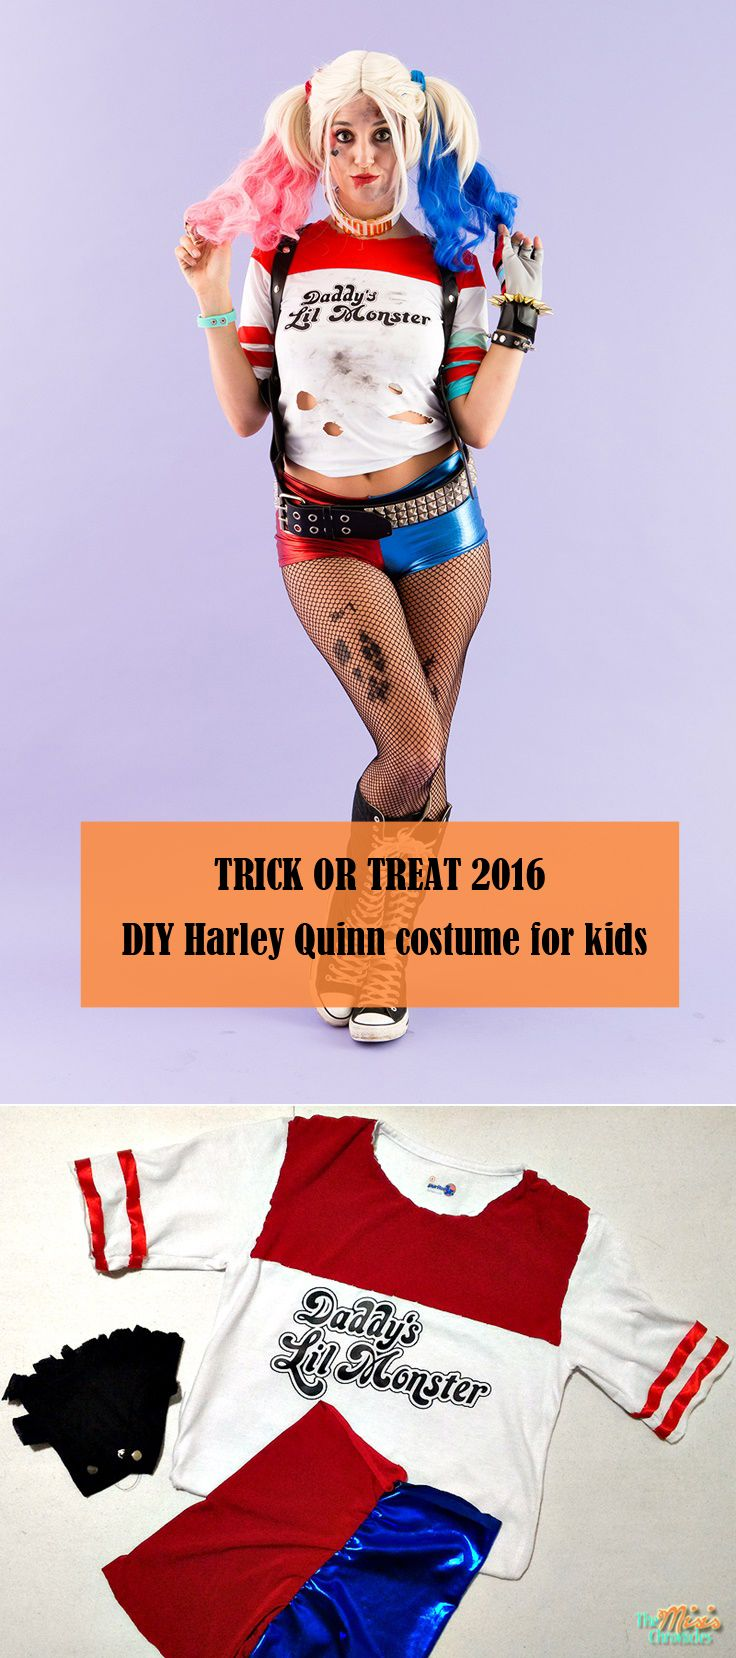 Here's how to DIY a Harley Quinn costume for your kids this Halloween 2016.